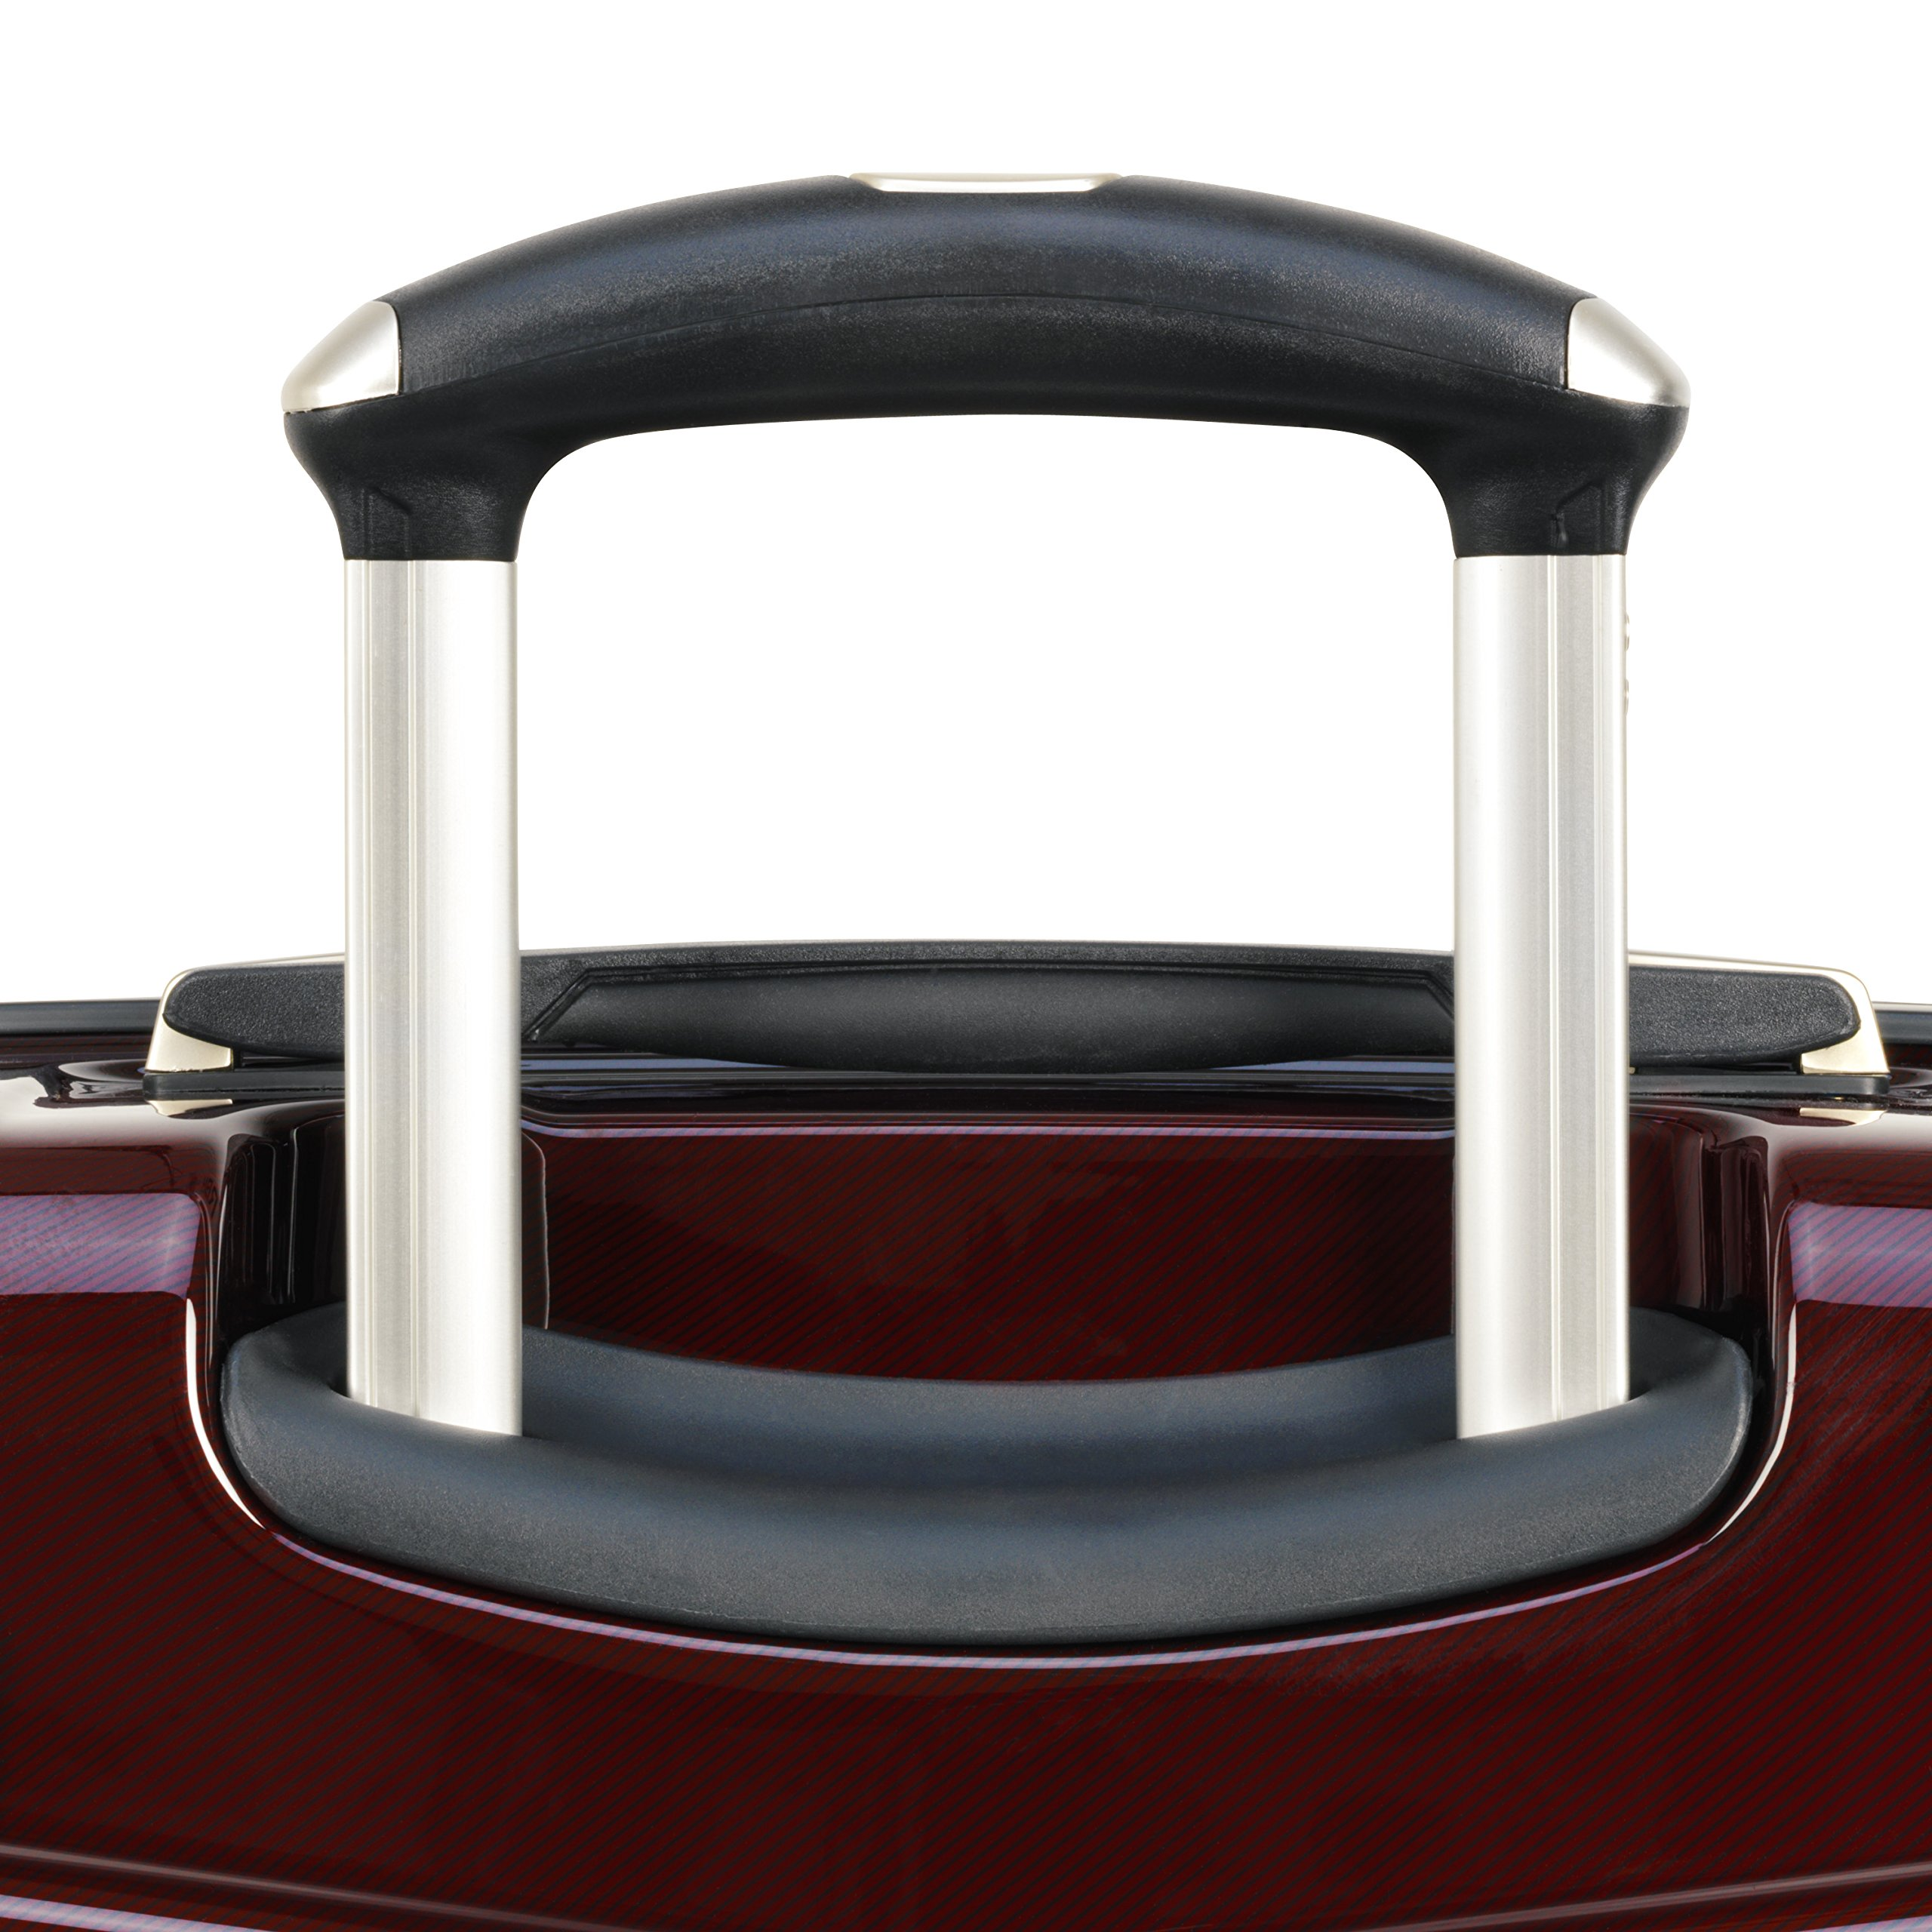 Ricardo Beverly Hills Luggage Rodeo Drive 29-Inch 4-Wheel Expandable Upright, Black Cherry, One Size by Ricardo Beverly Hills (Image #7)